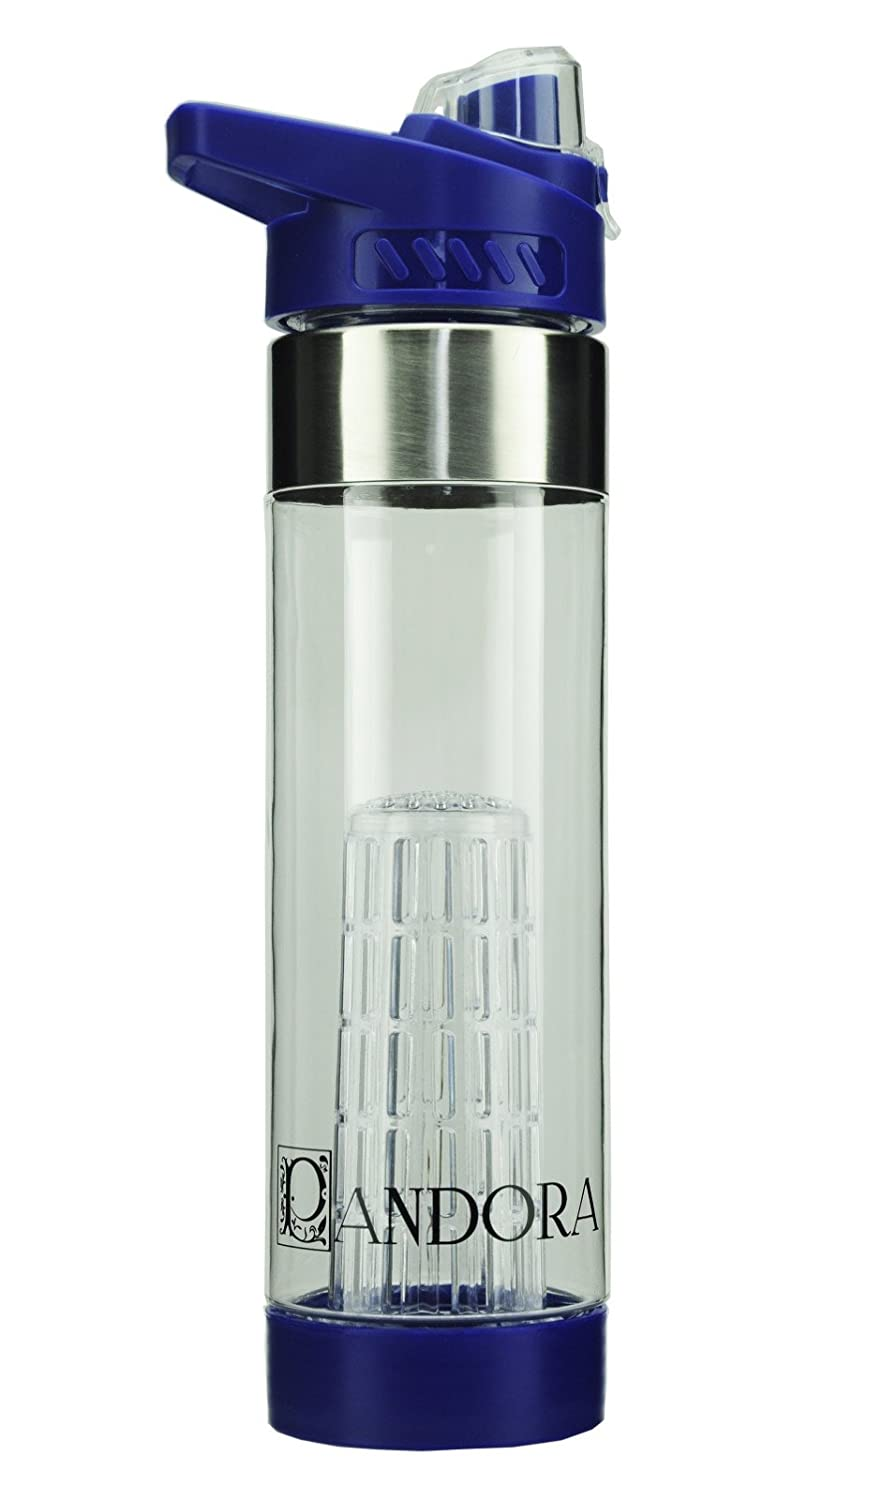 Pandora Premium Blue Fruit Water Bottle Infuser - 24 oz BPA Free Durable  Tritan Plastic - Sleek Flip Top Lid